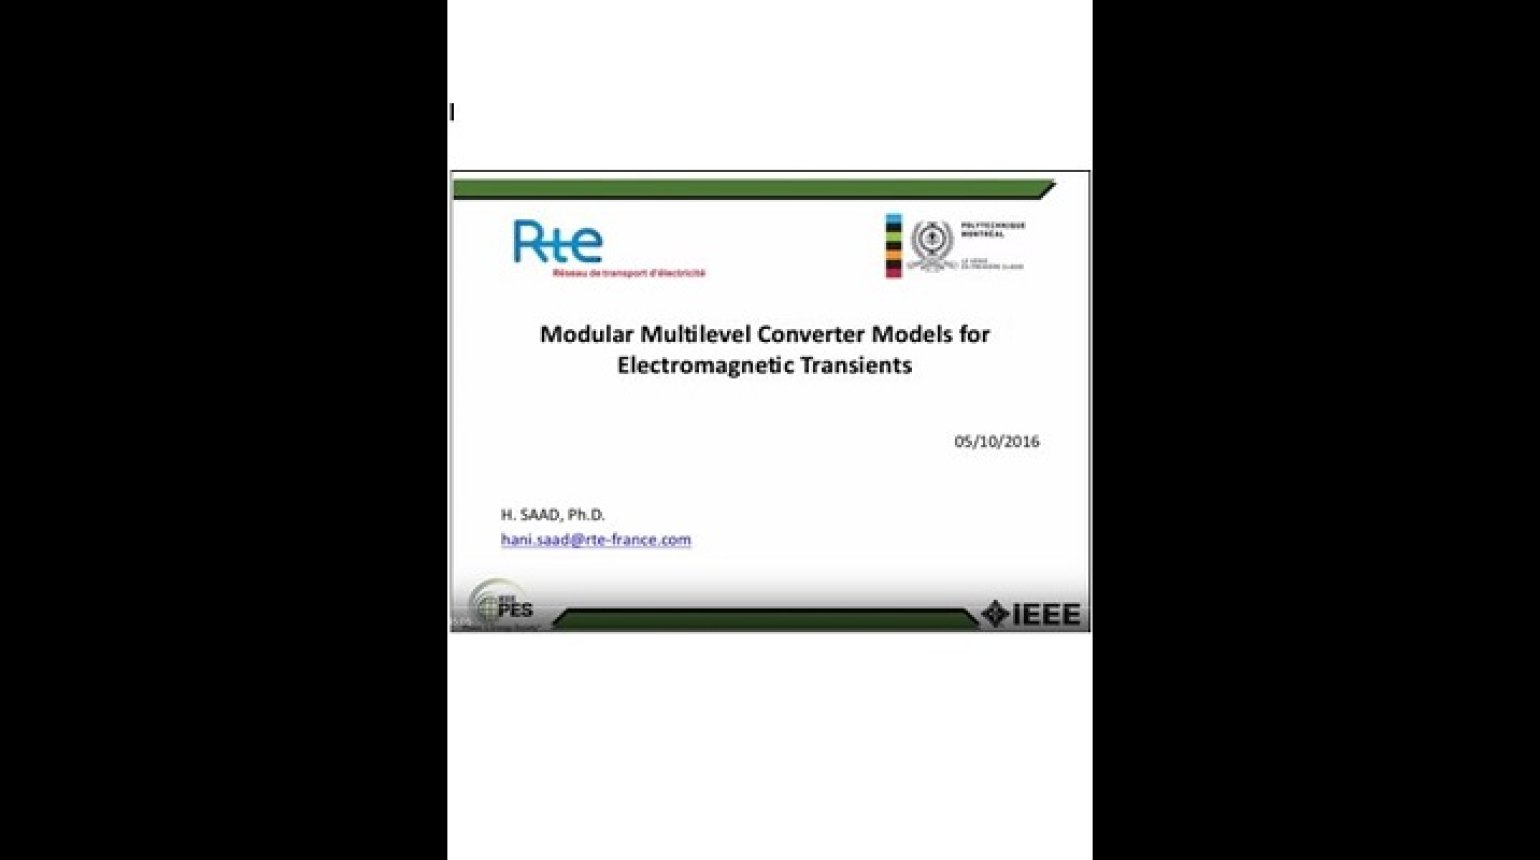 Dynamic Averaged and Simplified Models for MMC-Based HVDC Transmission Systems